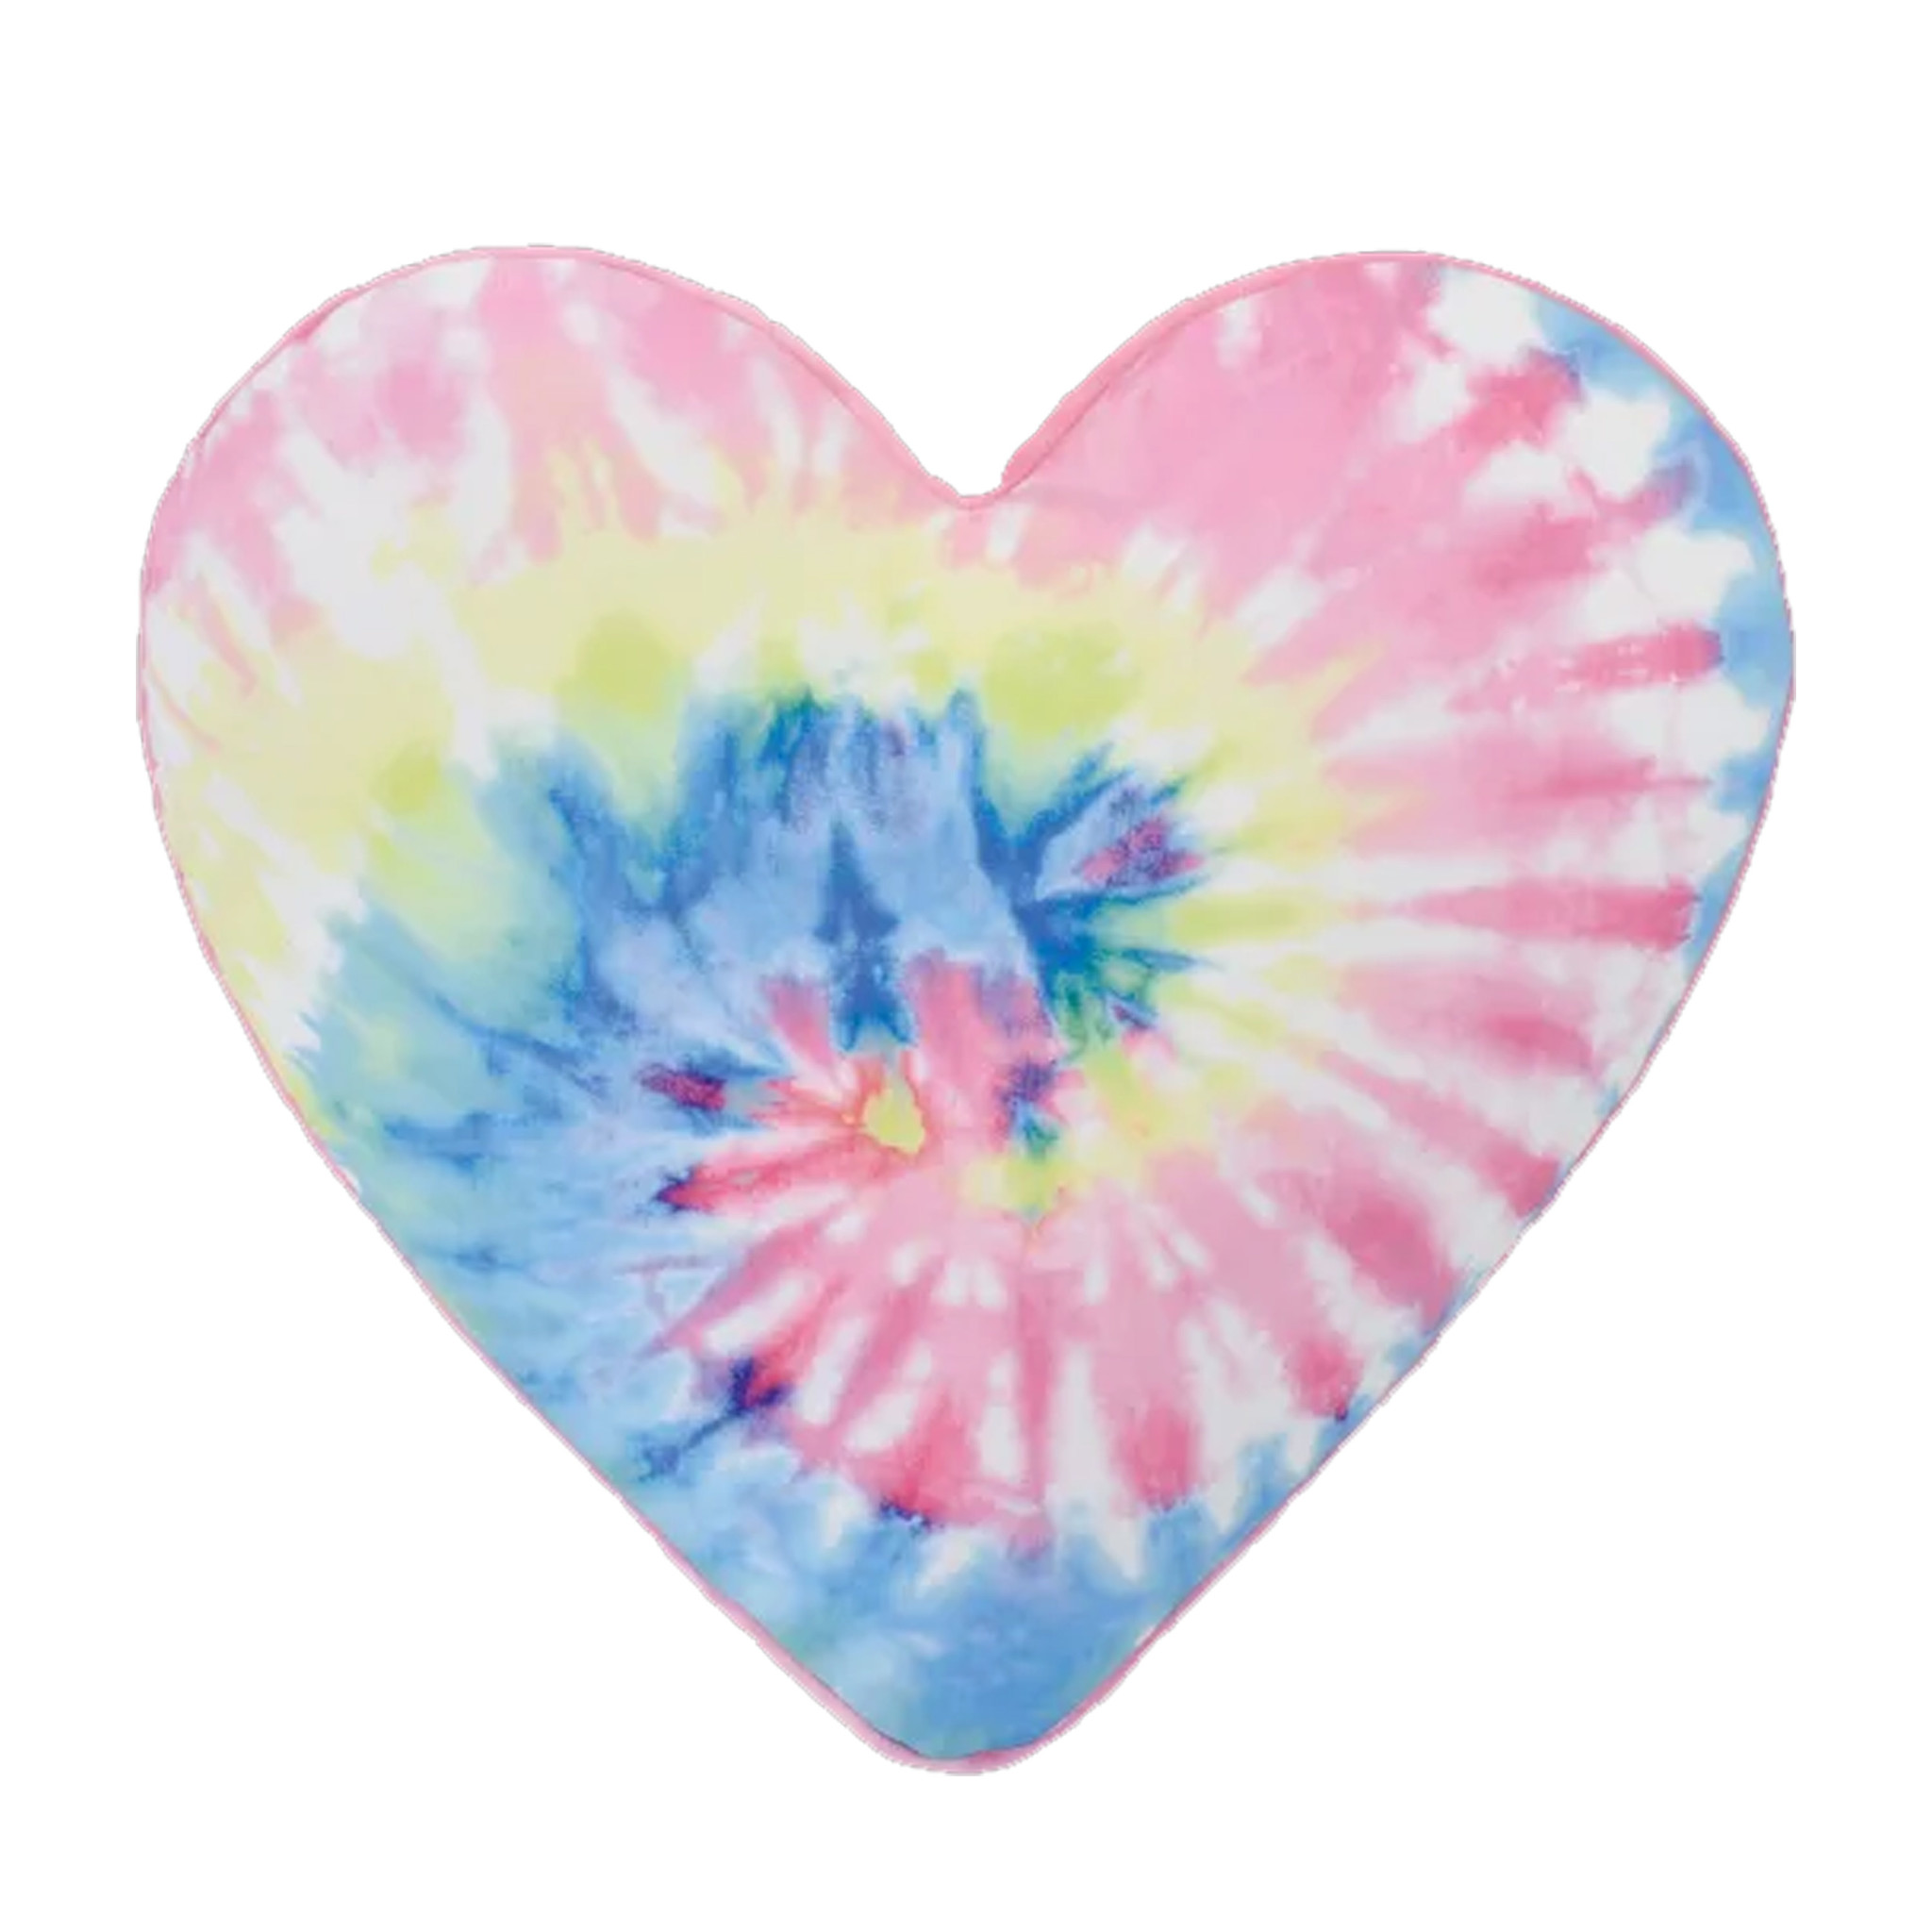 Tie Dye Heart Bubblegum Scented Microbead Pillow